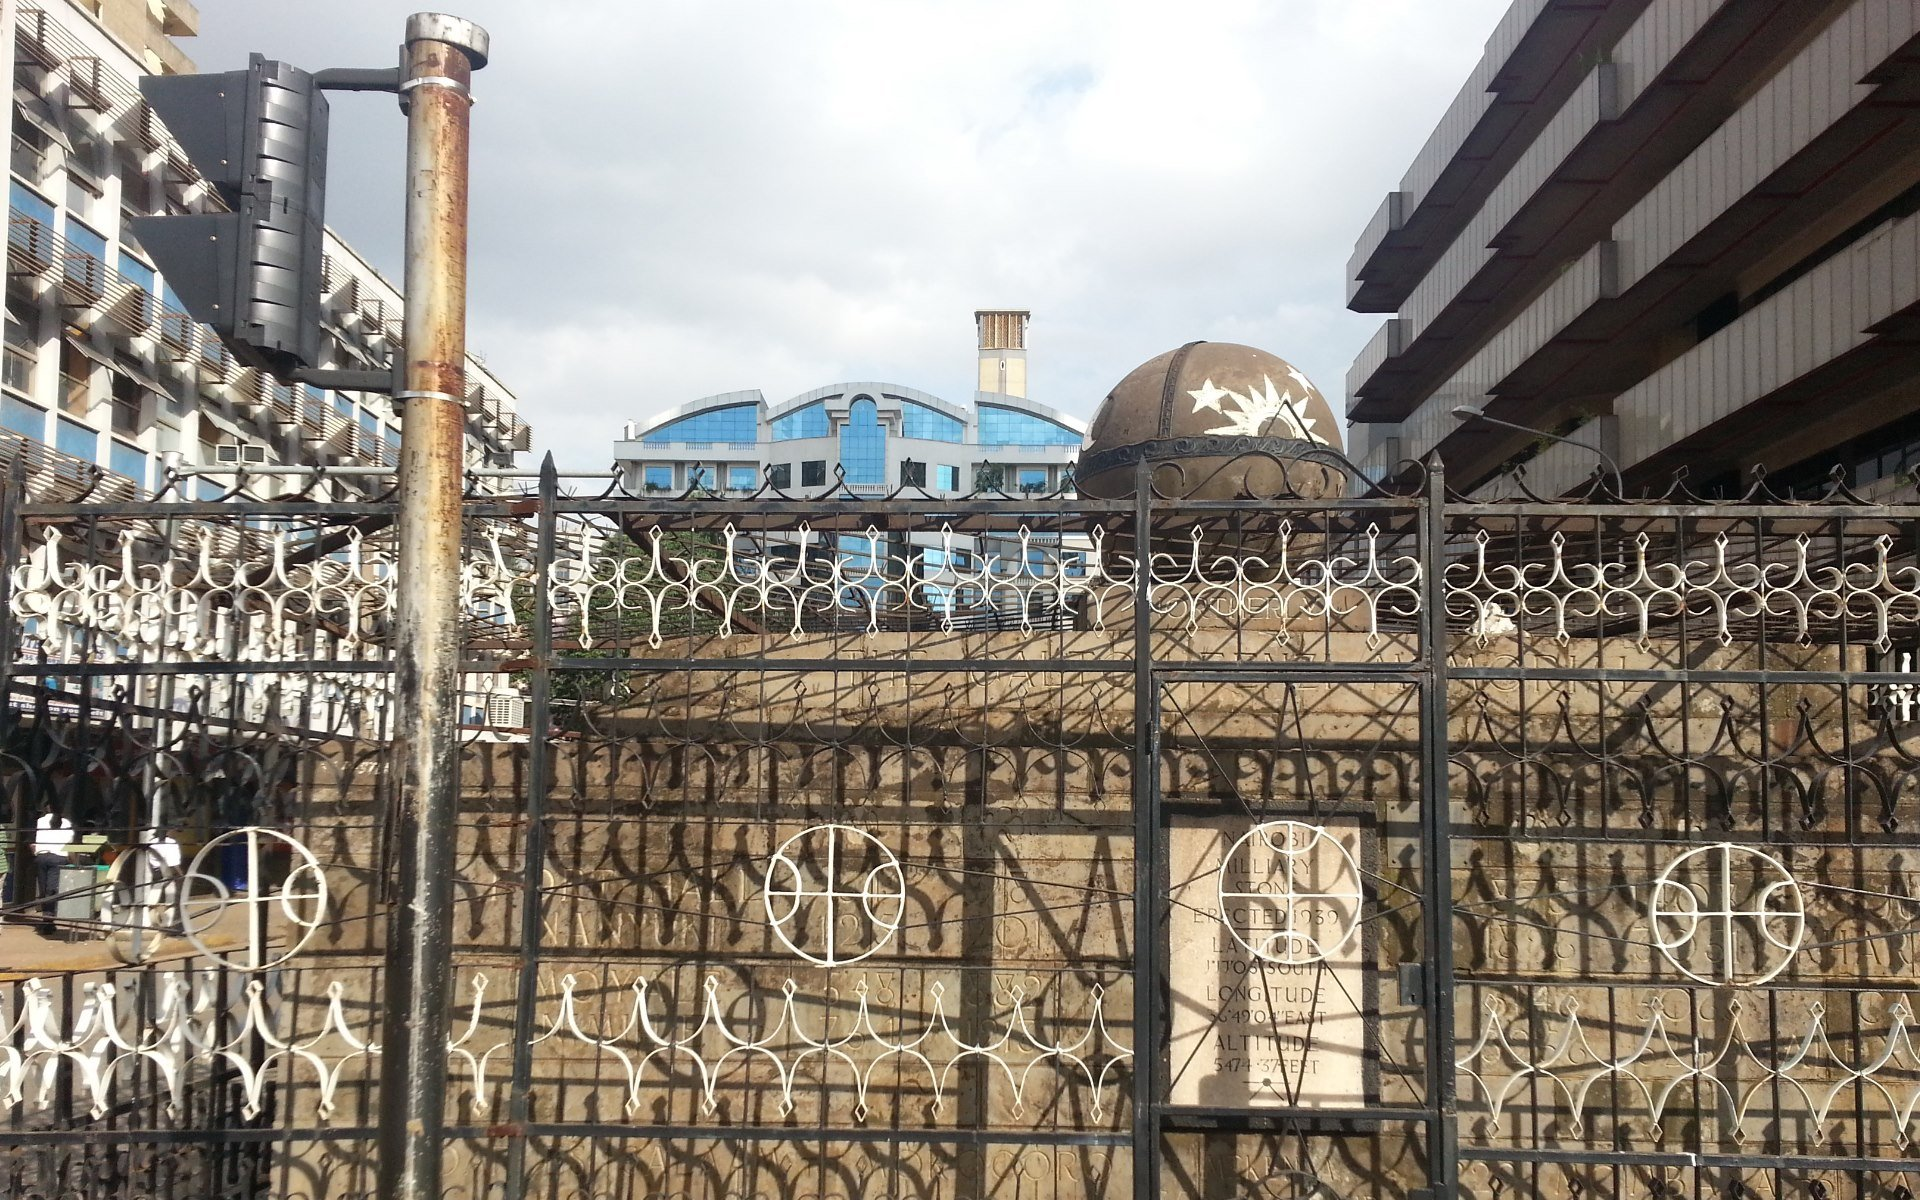 The Galton-Fenzi Memorial should be one of those monuments in Nairobi that elicits a lot of attention from travellers because of its history. It does not.